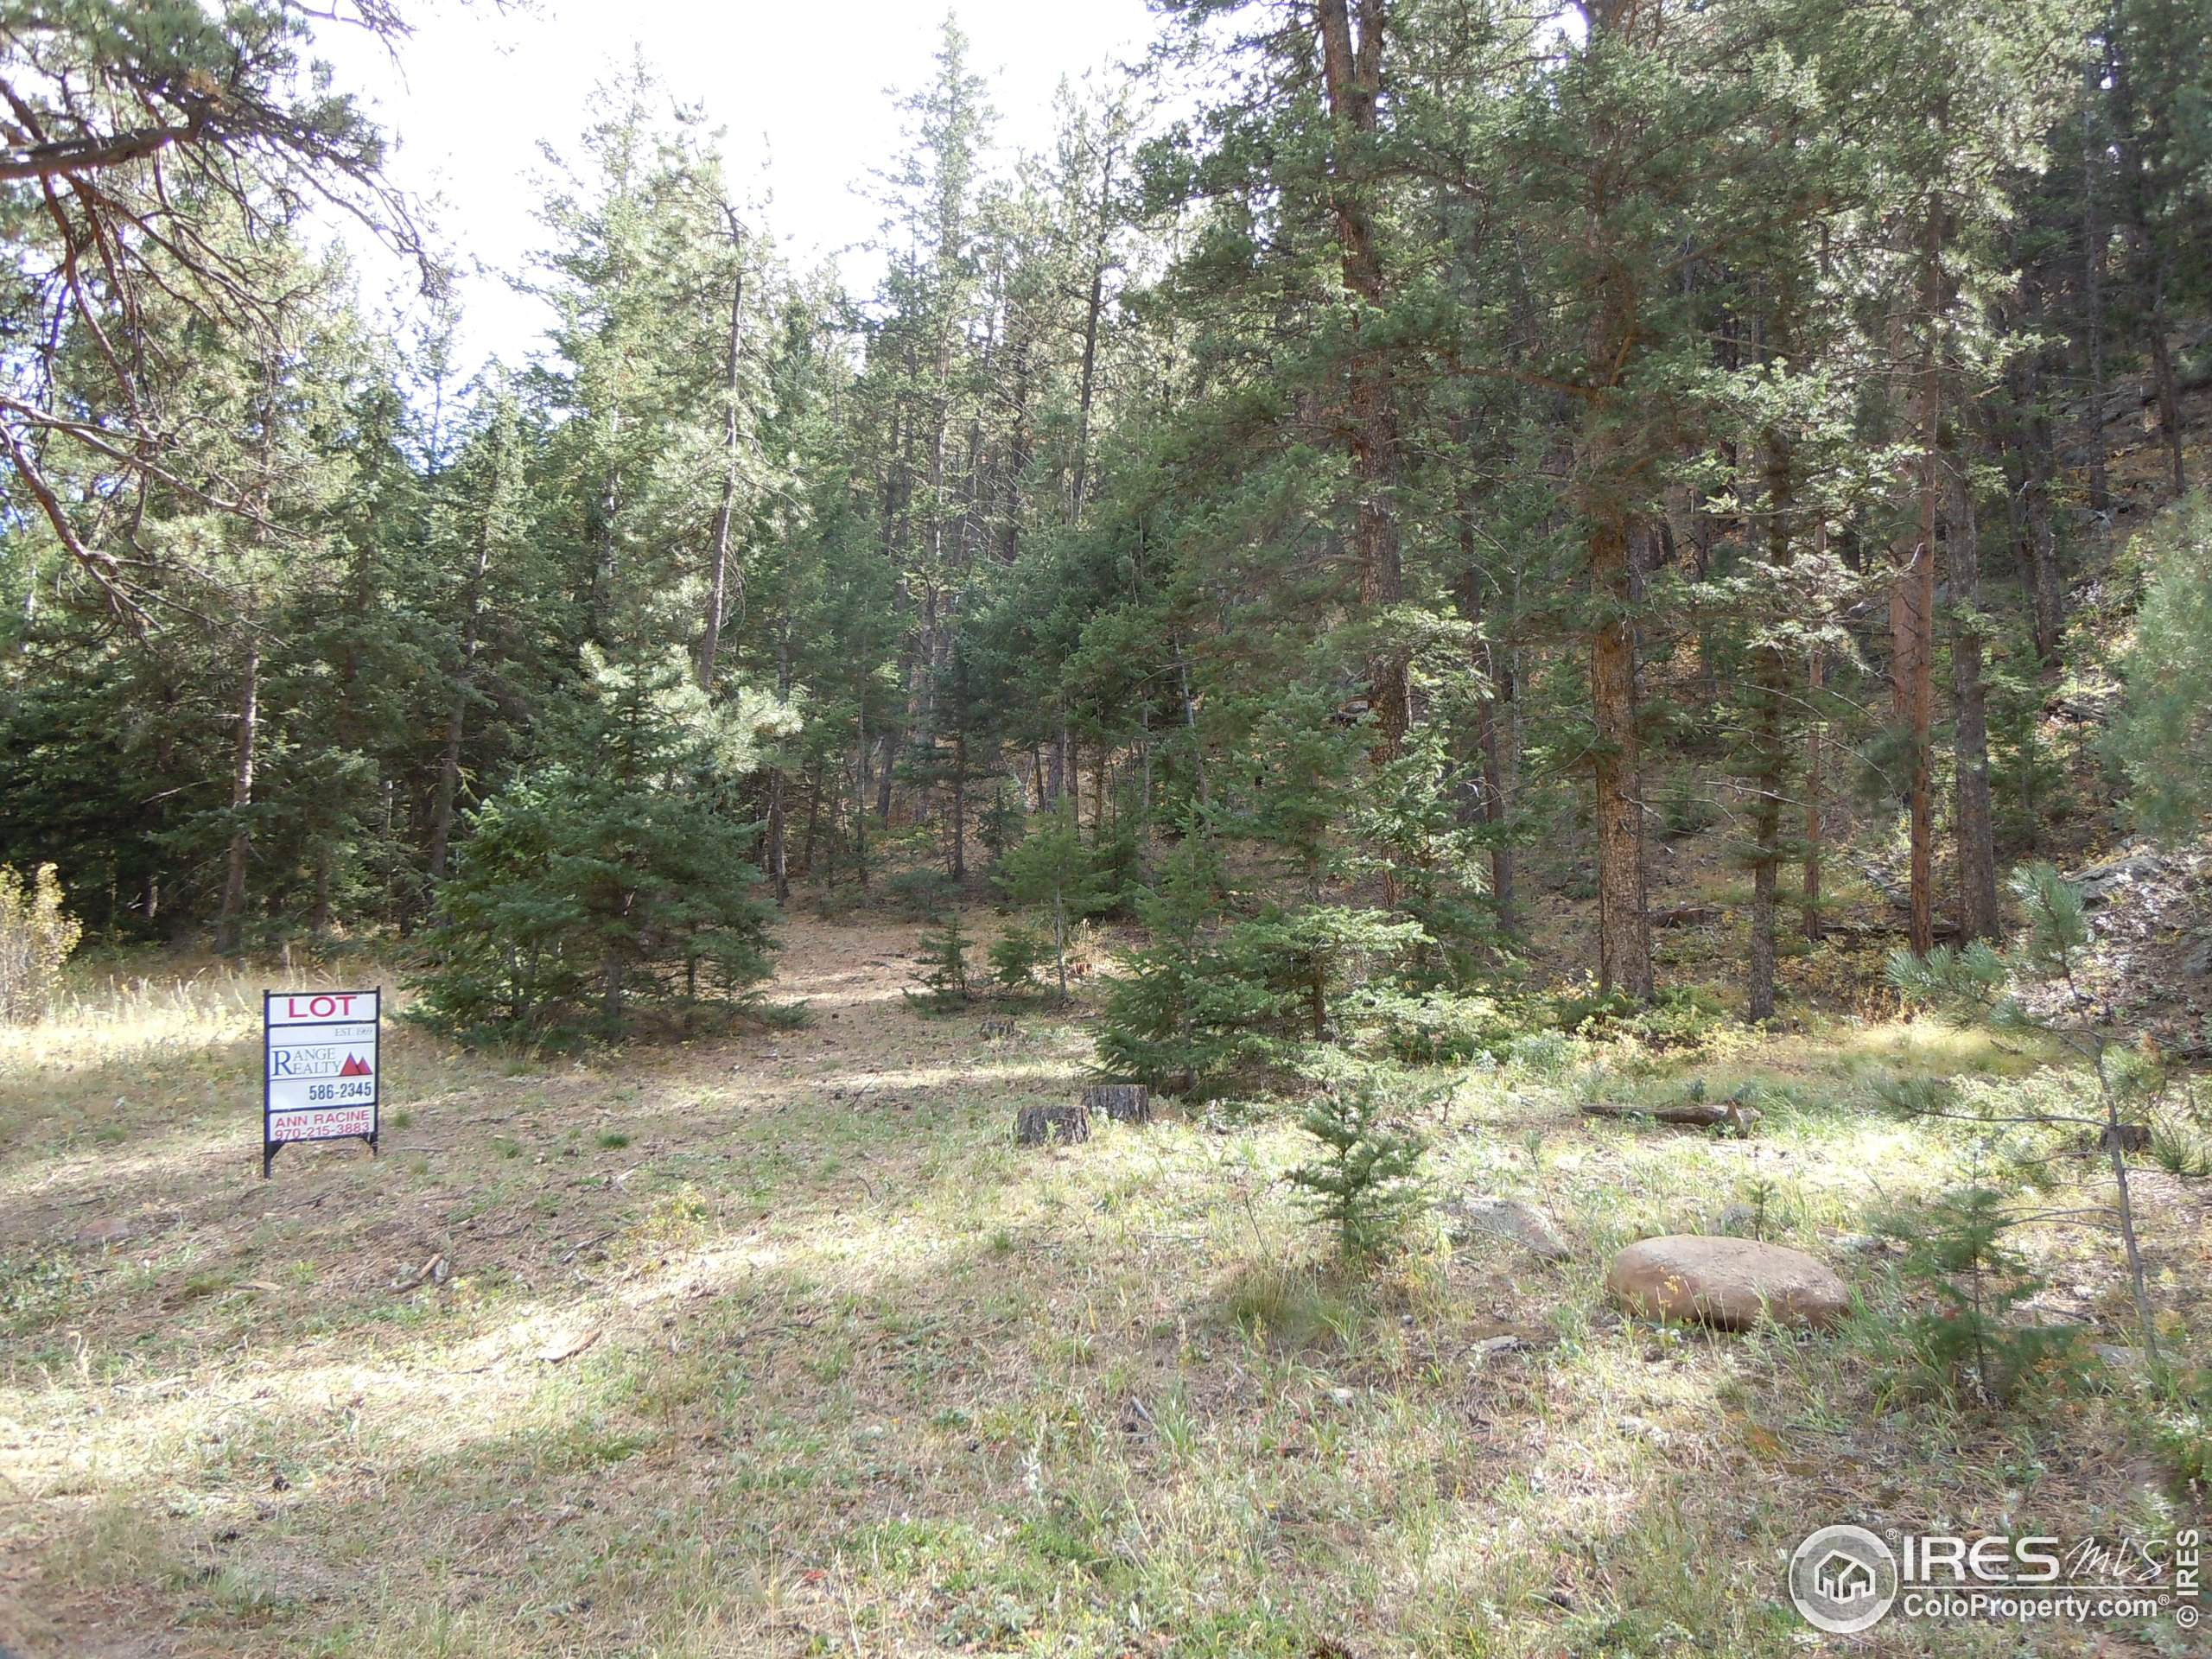 1550 E 18 St, Greeley, CO 80631 (#940437) :: Mile High Luxury Real Estate